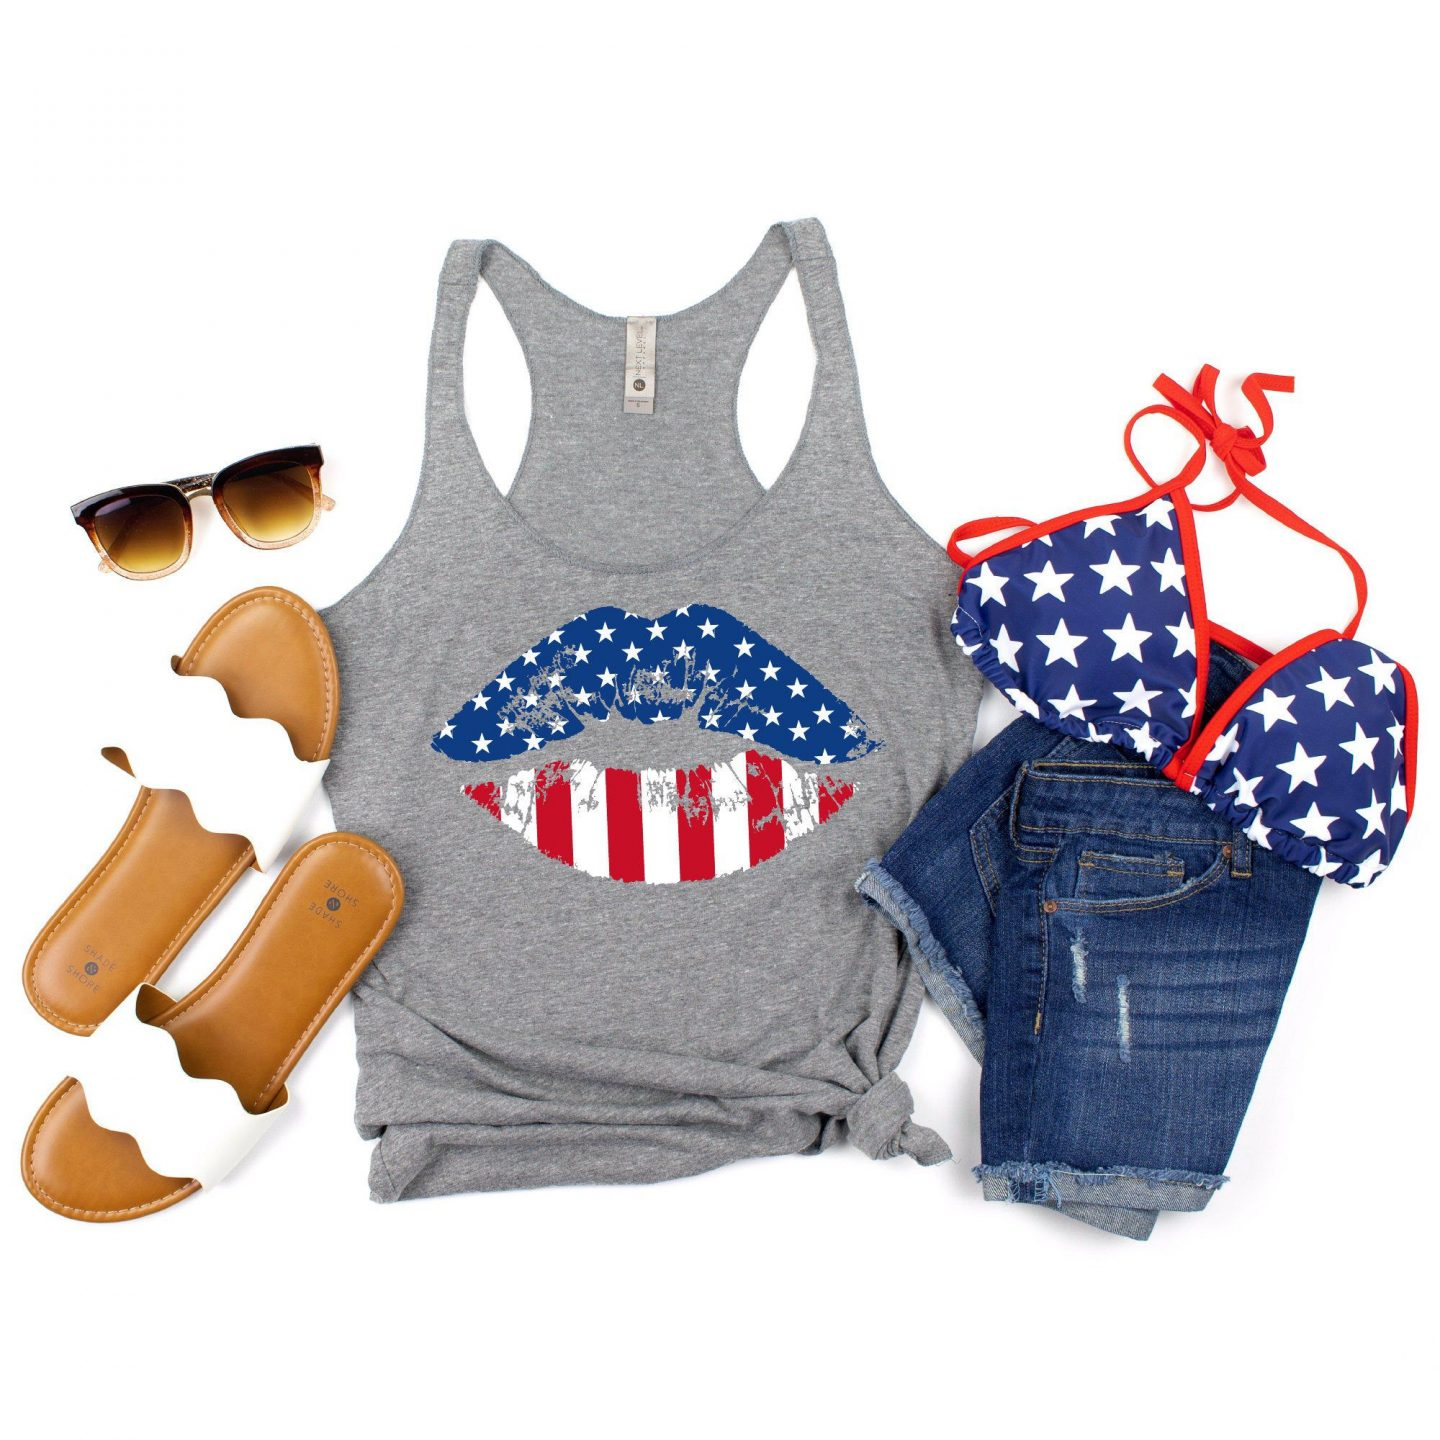 July 4th casual outfit